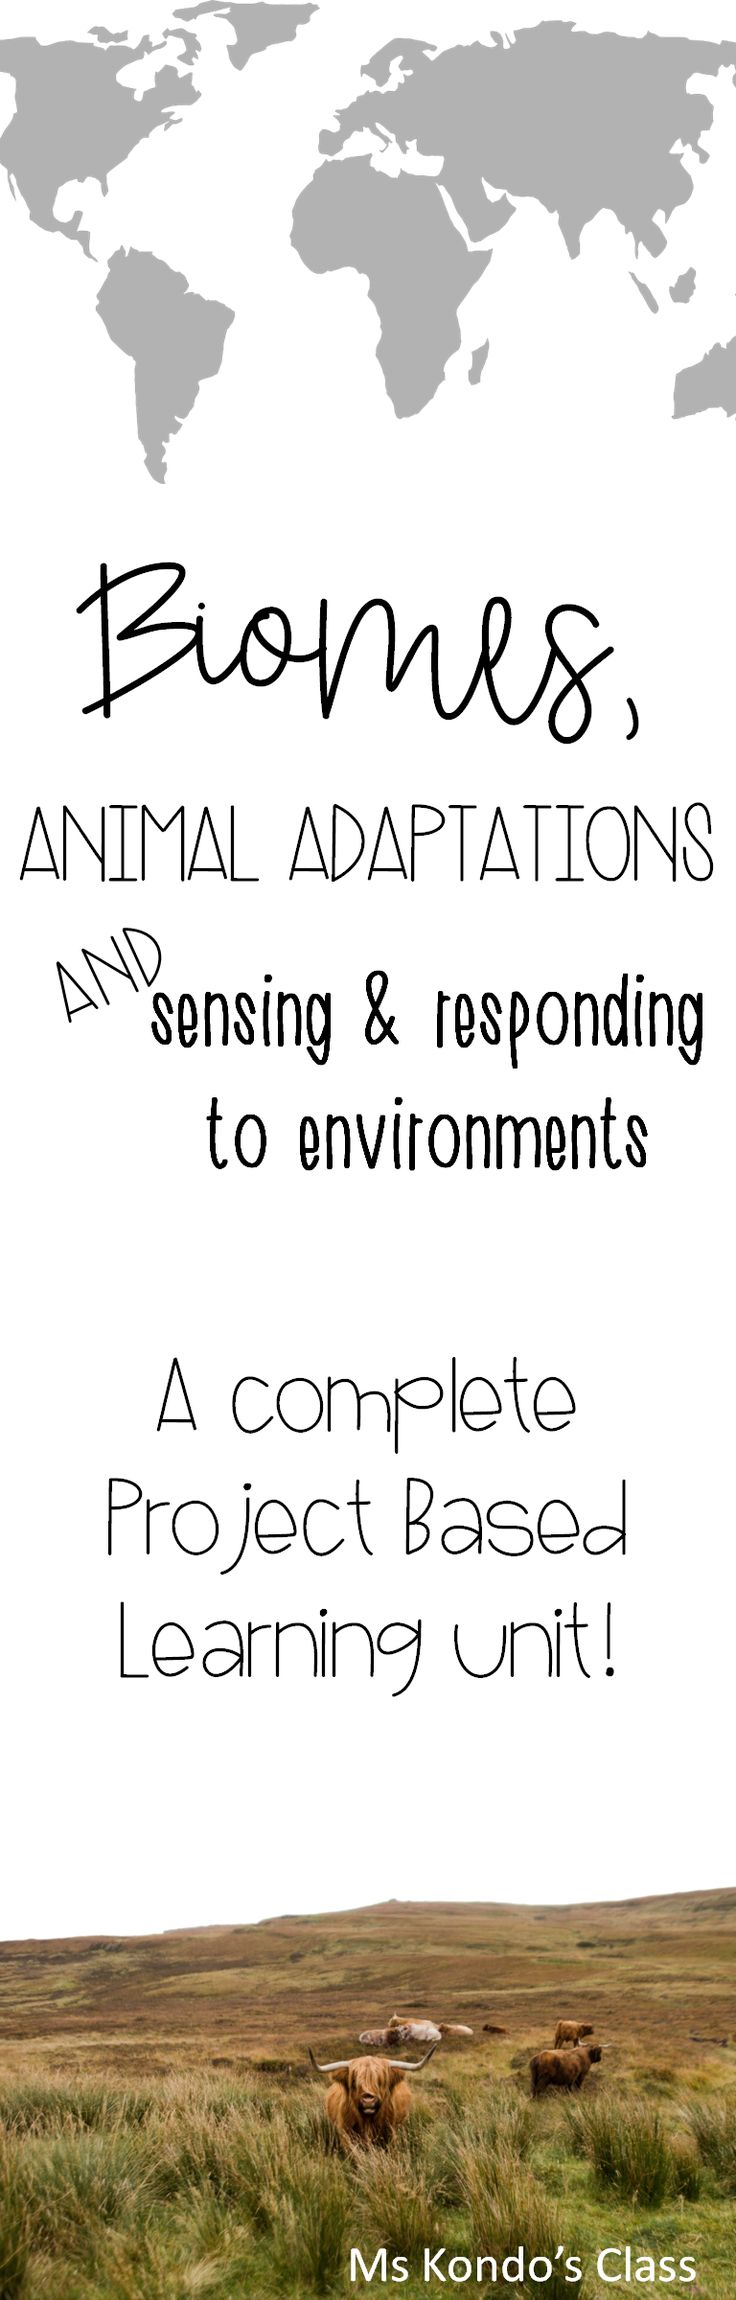 Biomes, animal adaptations, and how animals sense and respond to environments. All these topics are covered in this complete Project Based Learning unit! I have included   original texts, research prompts, comprehension questions, rubrics, assignments, projects, and more!